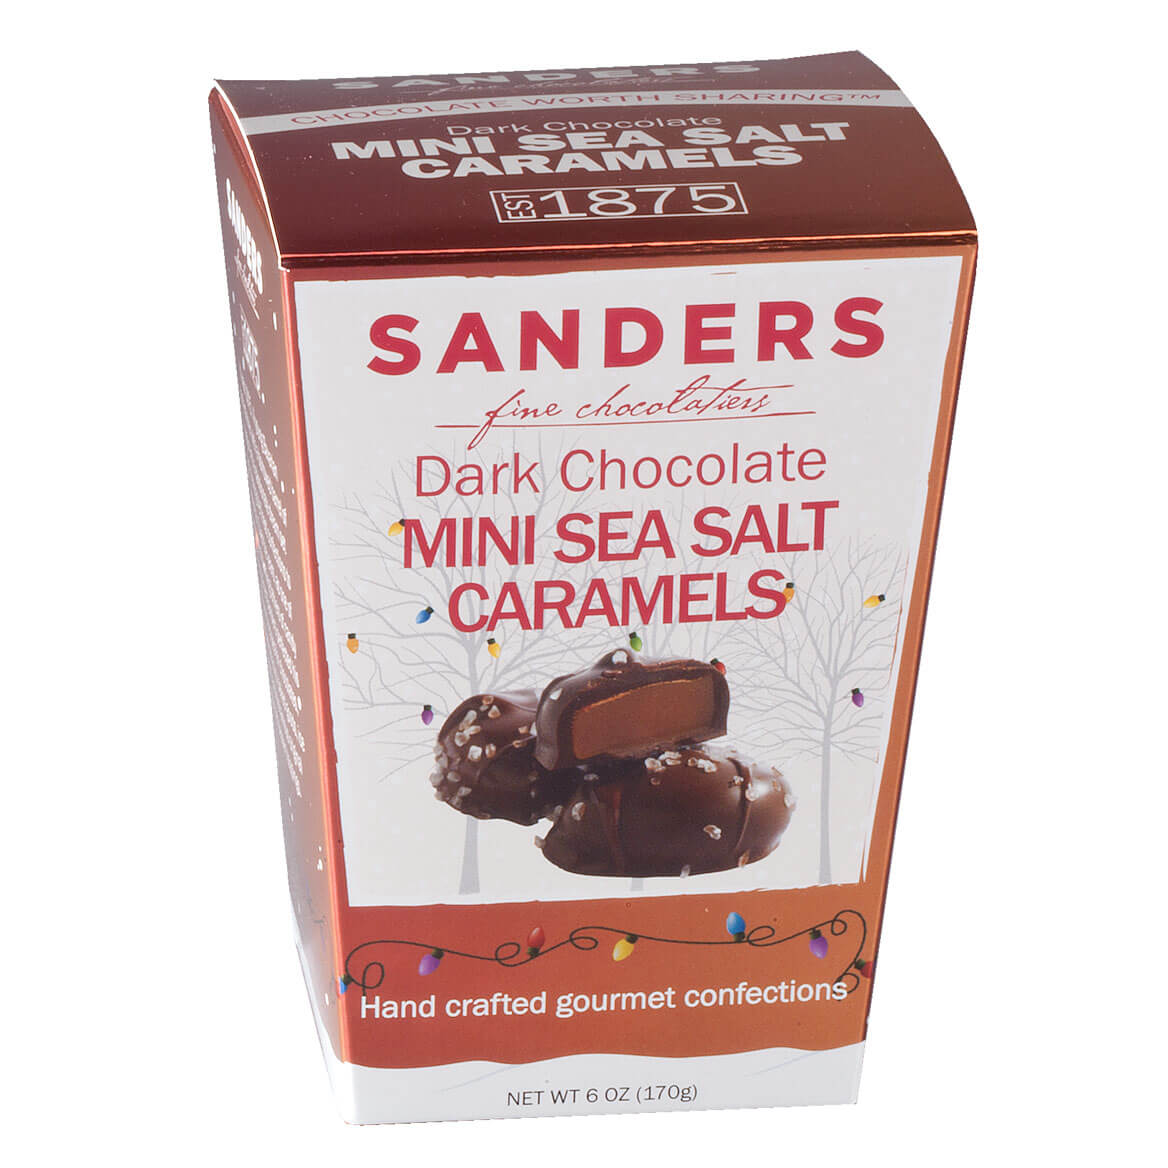 Sanders® Dark Chocolate Mini Sea Salt Caramels, 6 oz.